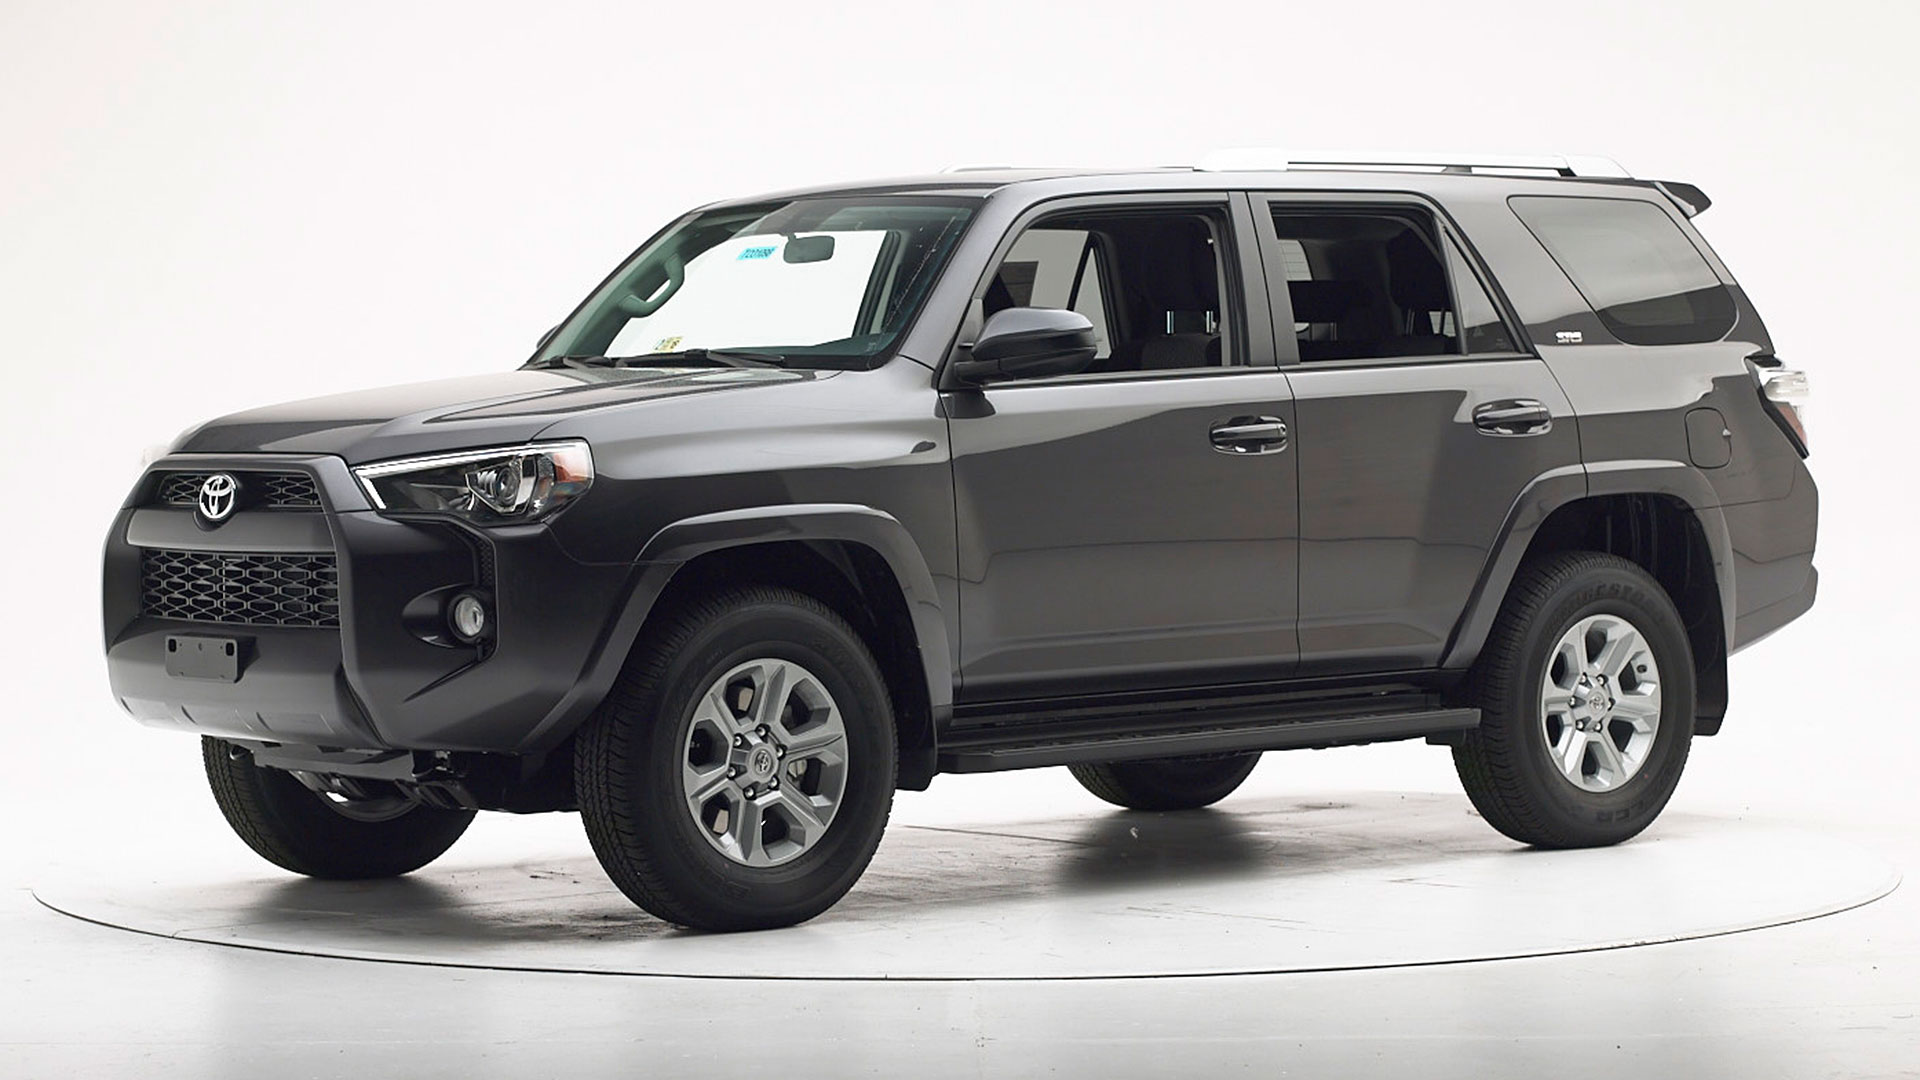 2018 Toyota 4Runner 4-door SUV